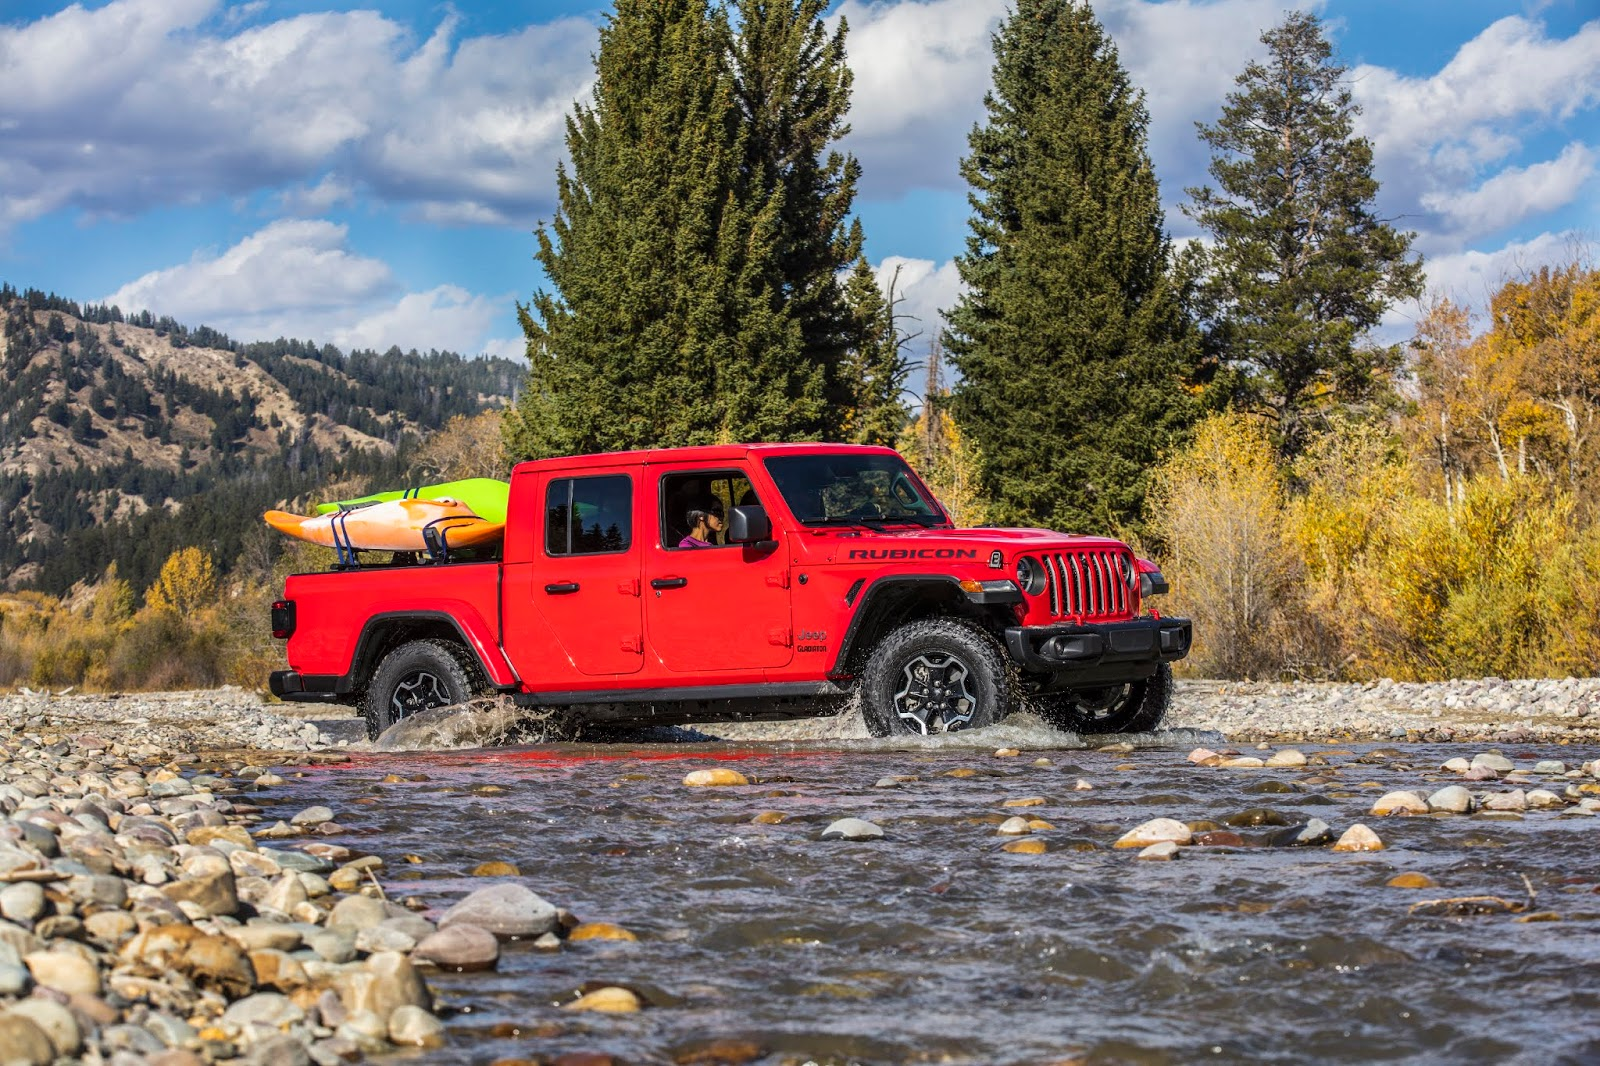 2020 Jeep Gladiator Truck - EVERYTHING We Know So Far